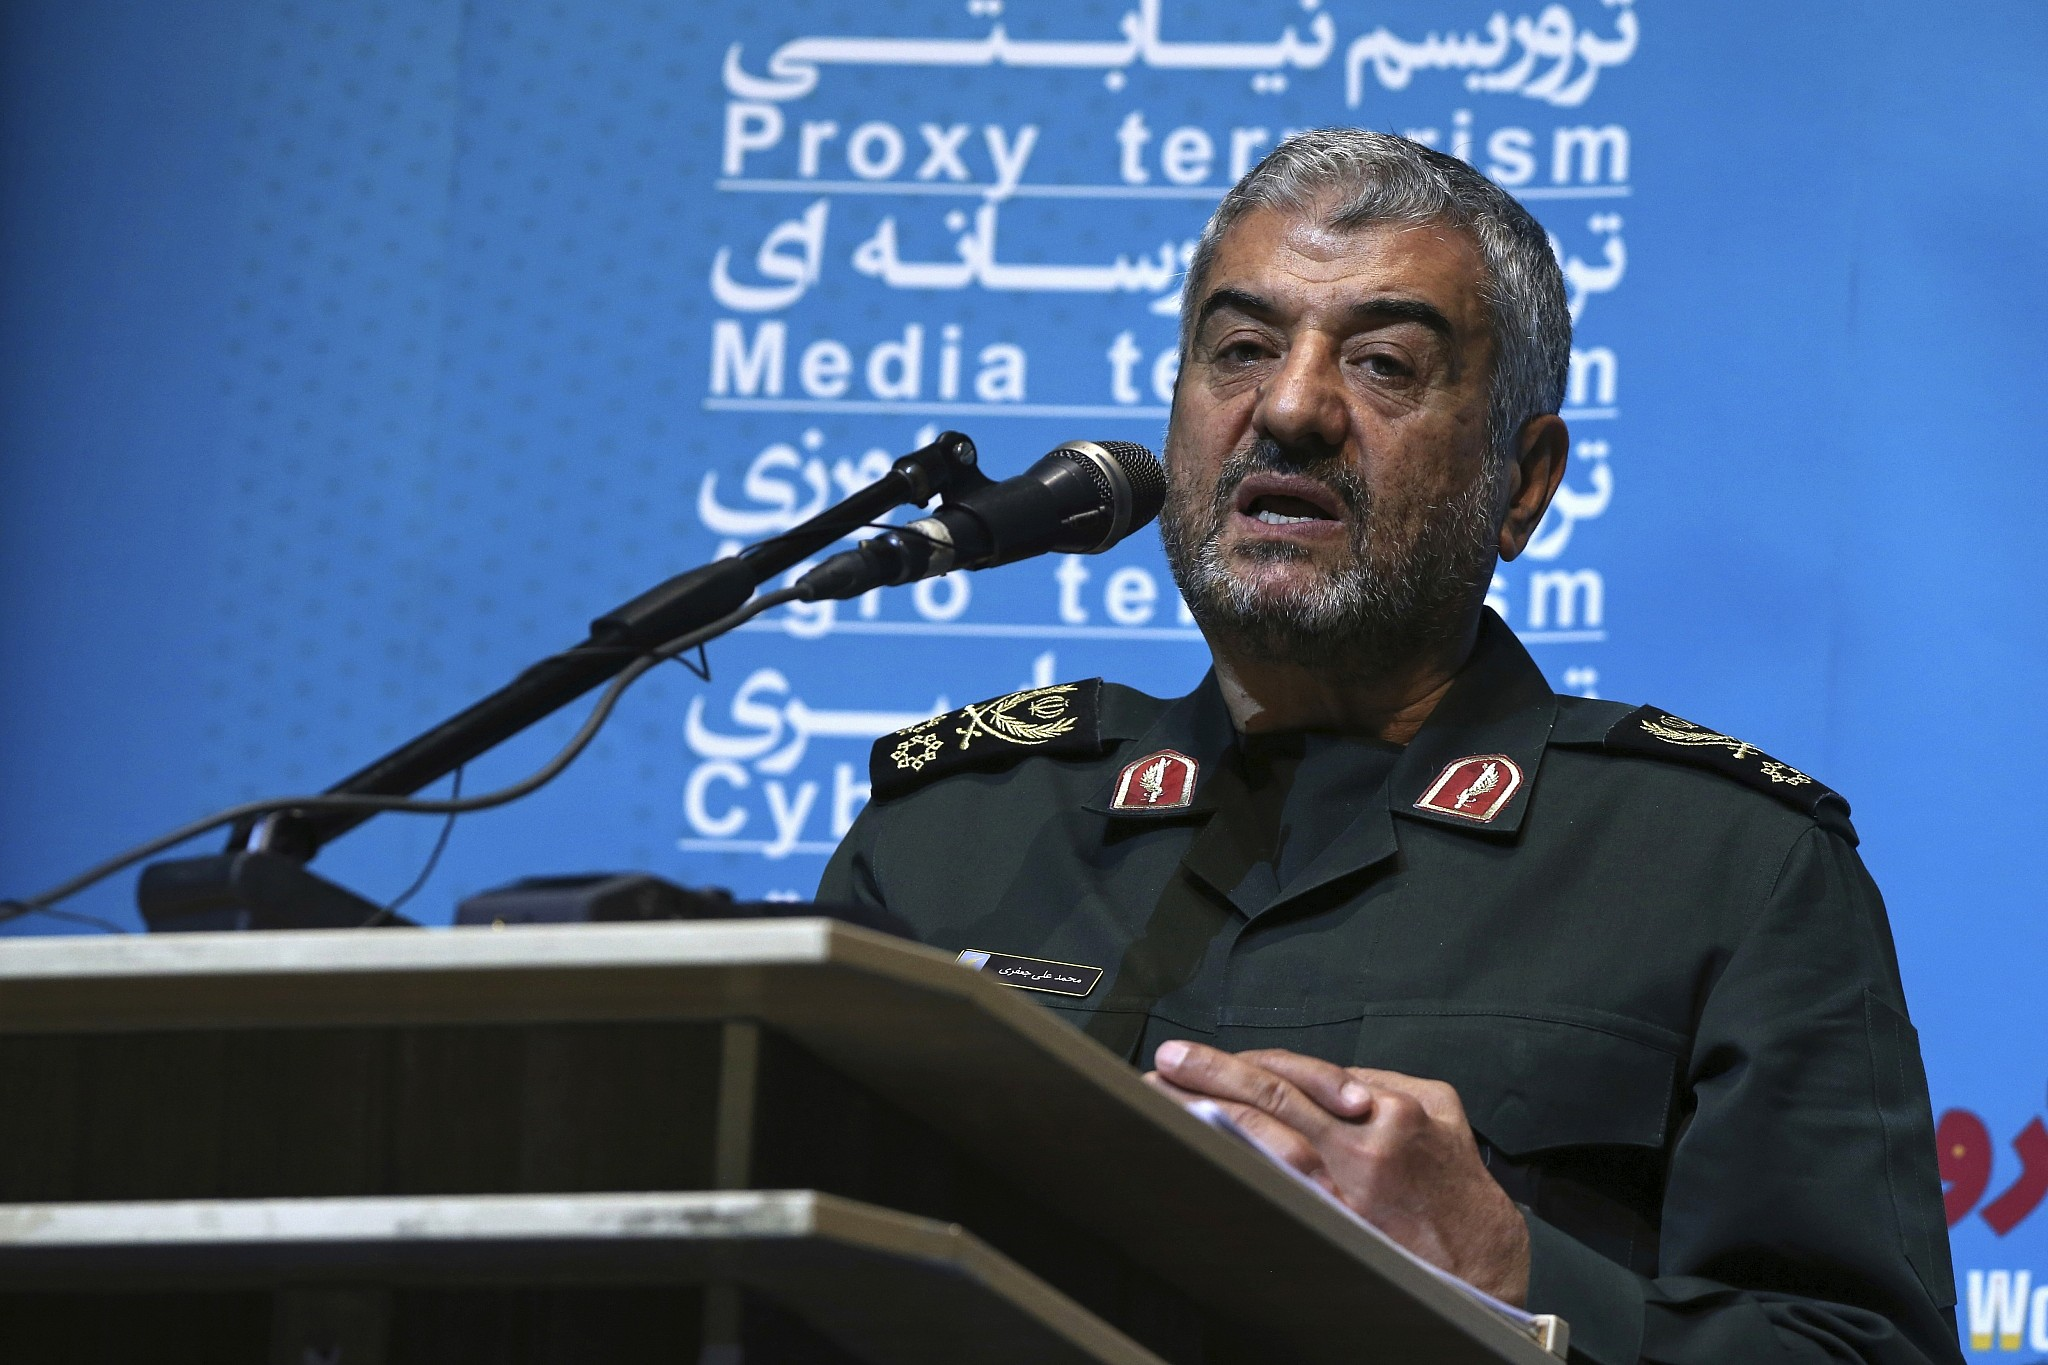 Iran military chief: Any new Mideast war will end with Israel 'eradicated'